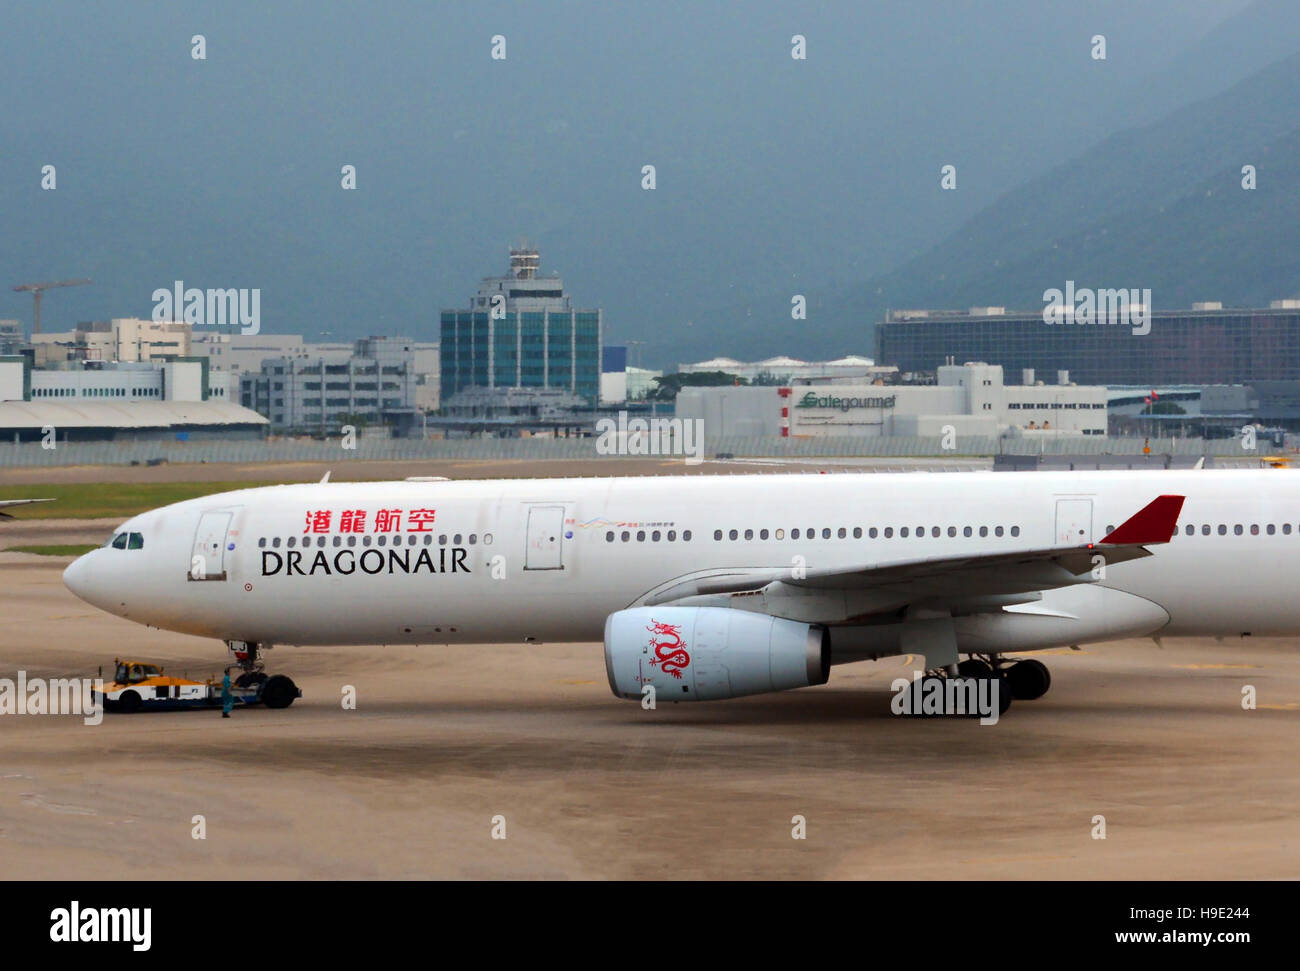 Airbus A 330 airplane of Dragonair arriving in Hong Kong international airport China - Stock Image